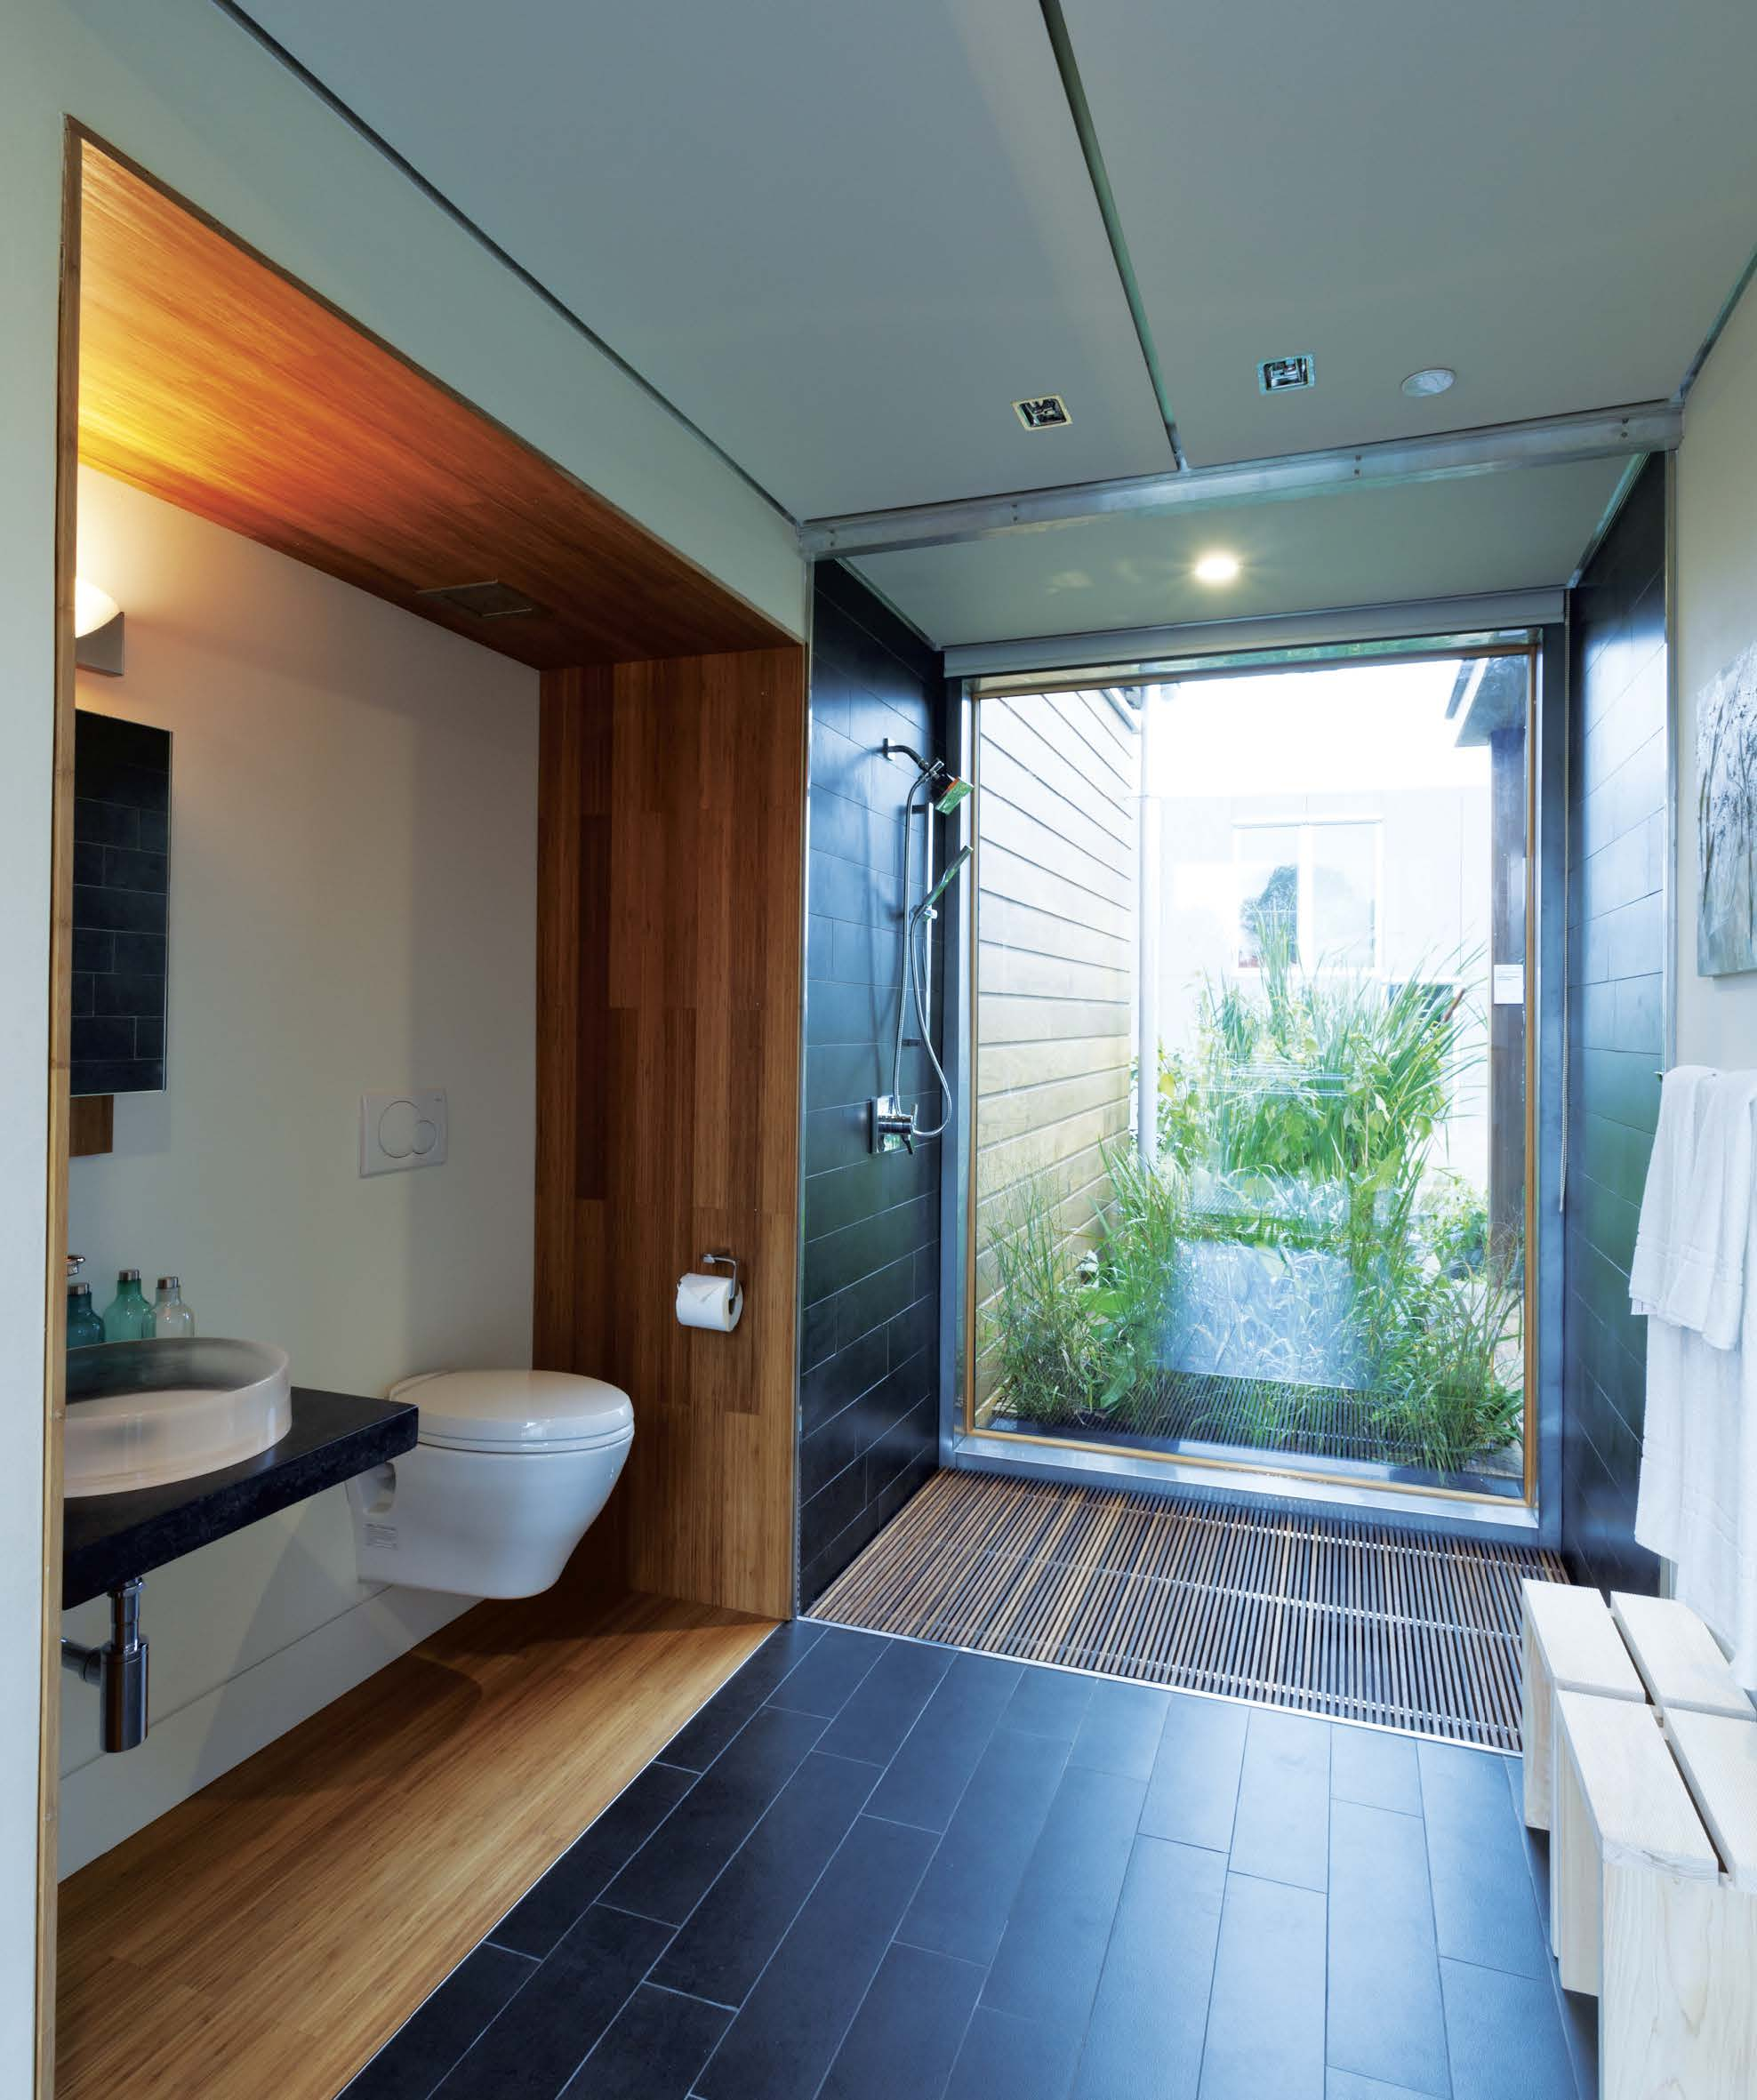 The bathroom is the focal point of the design and water conservation and reuse is a central theme to the project.